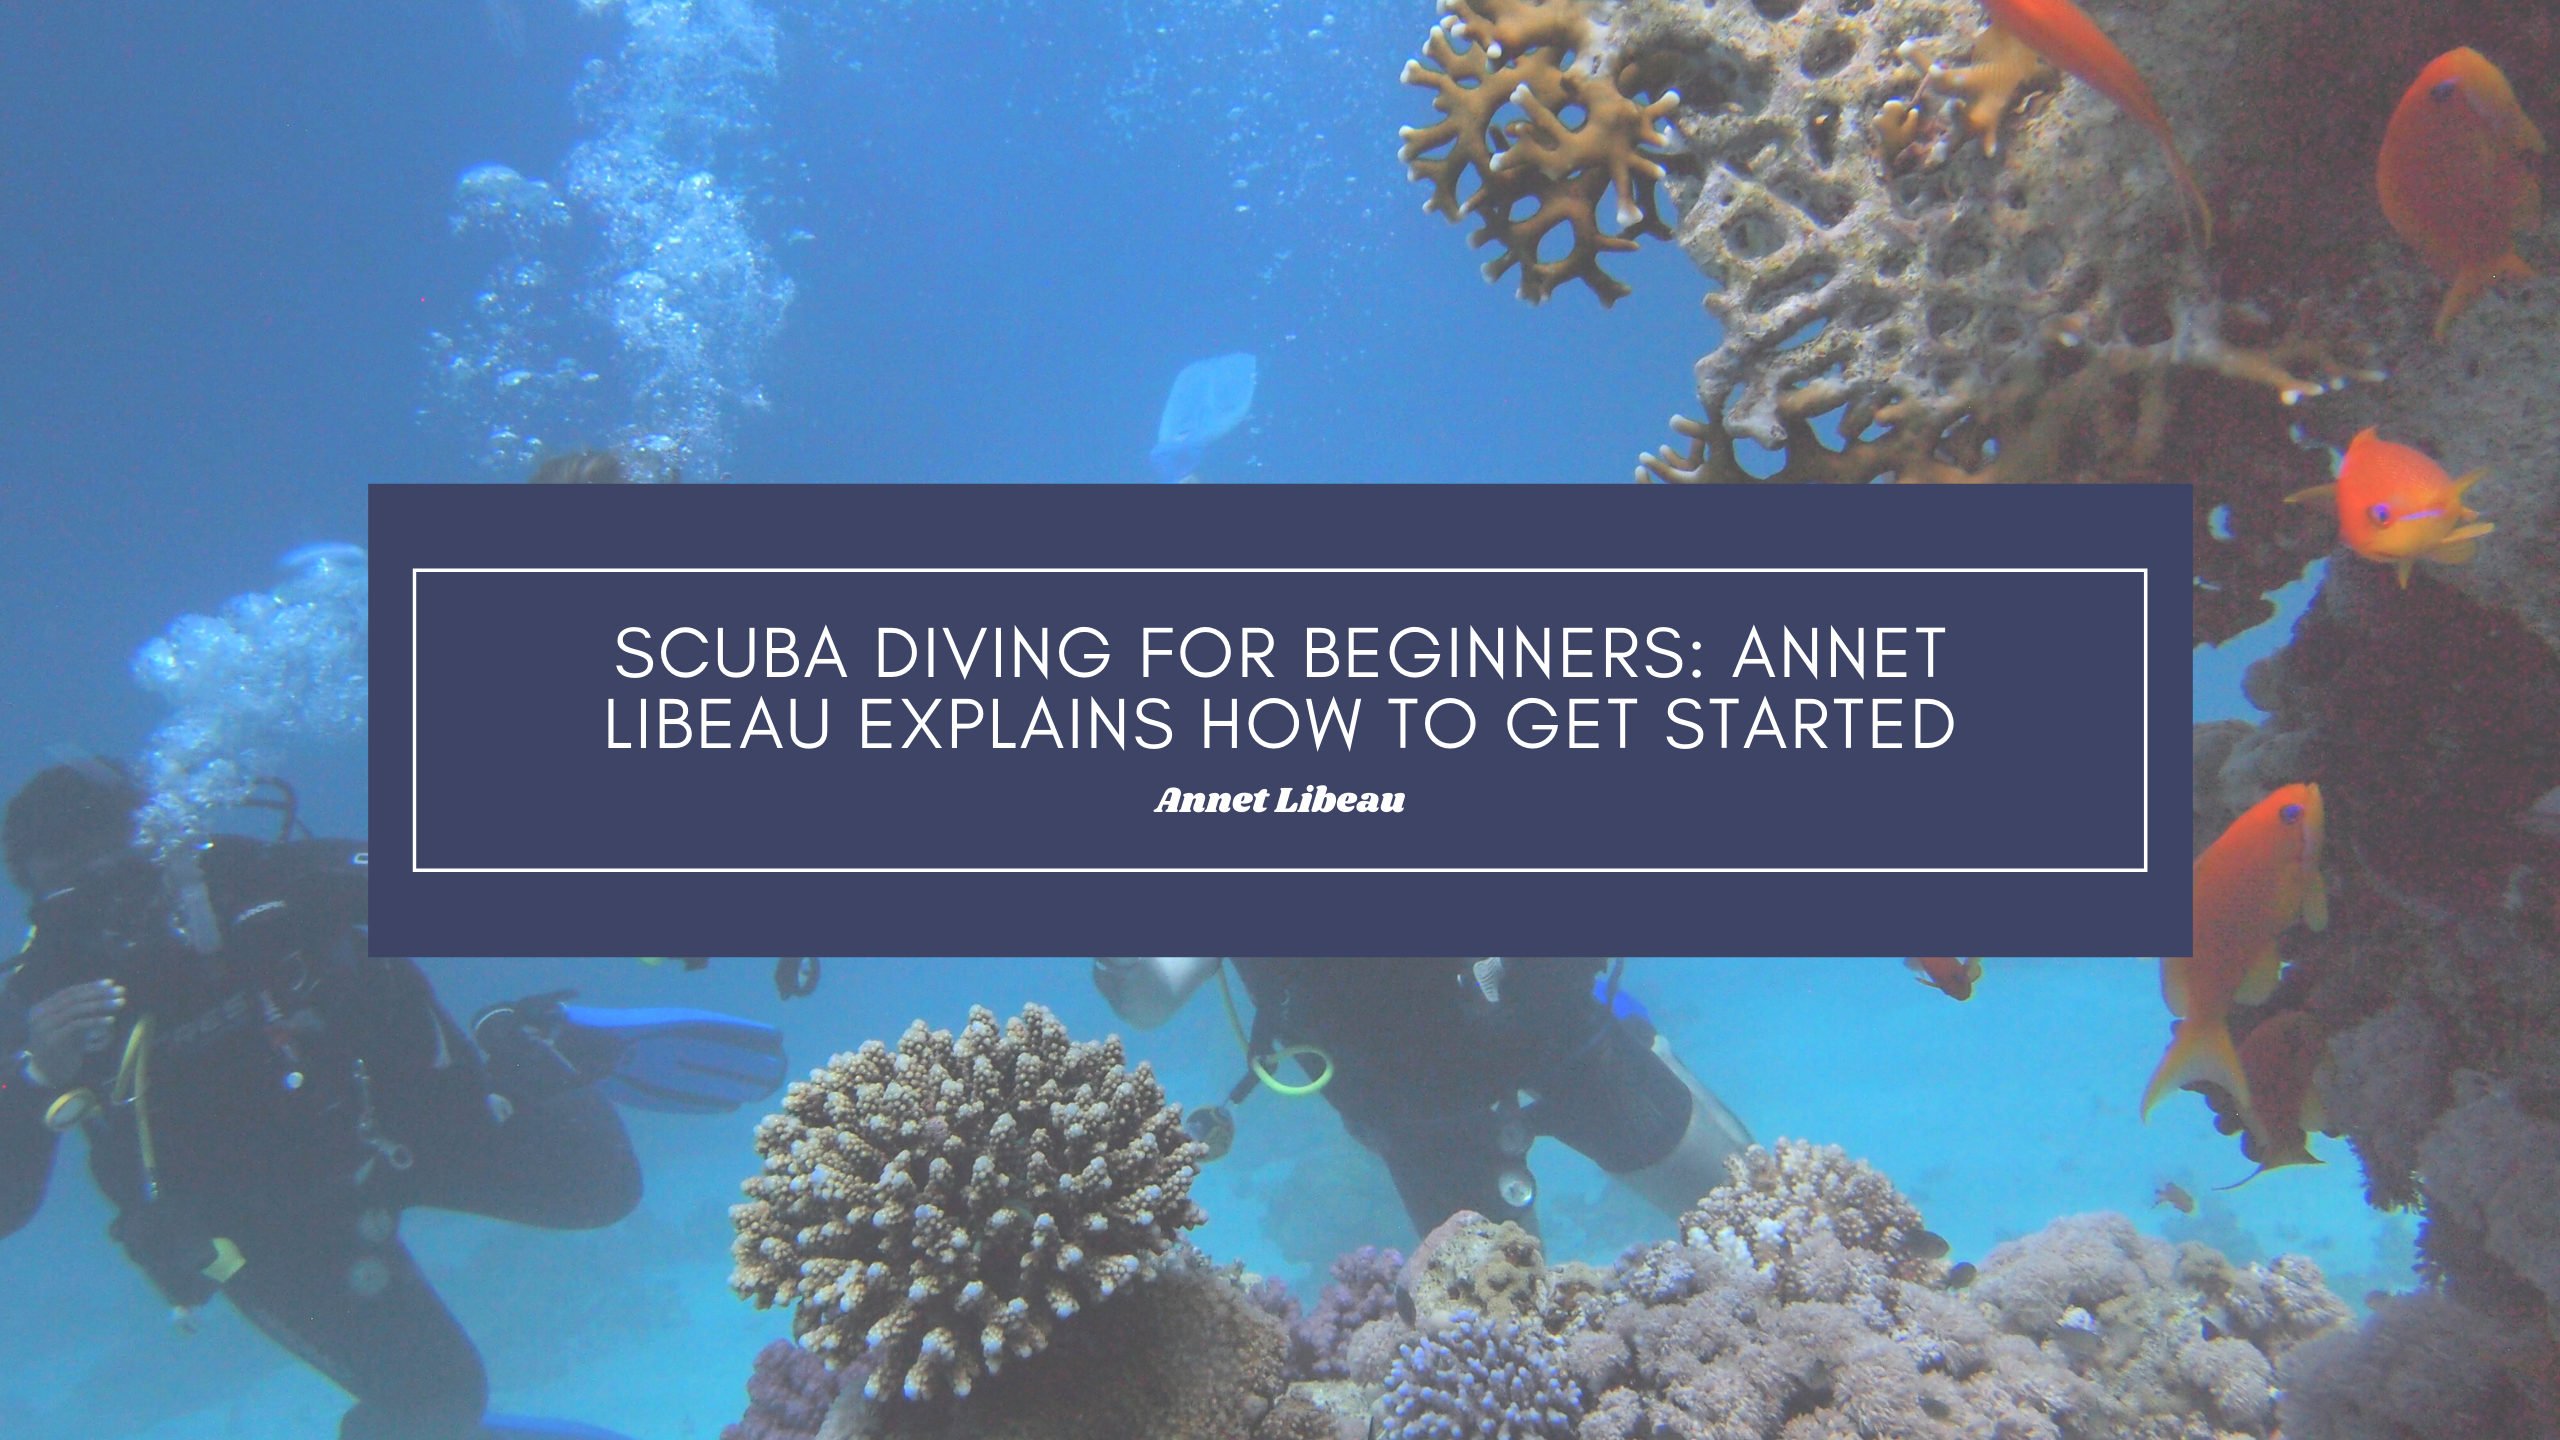 Scuba Diving For Beginners: Annet Libeau Explains How To Get Started